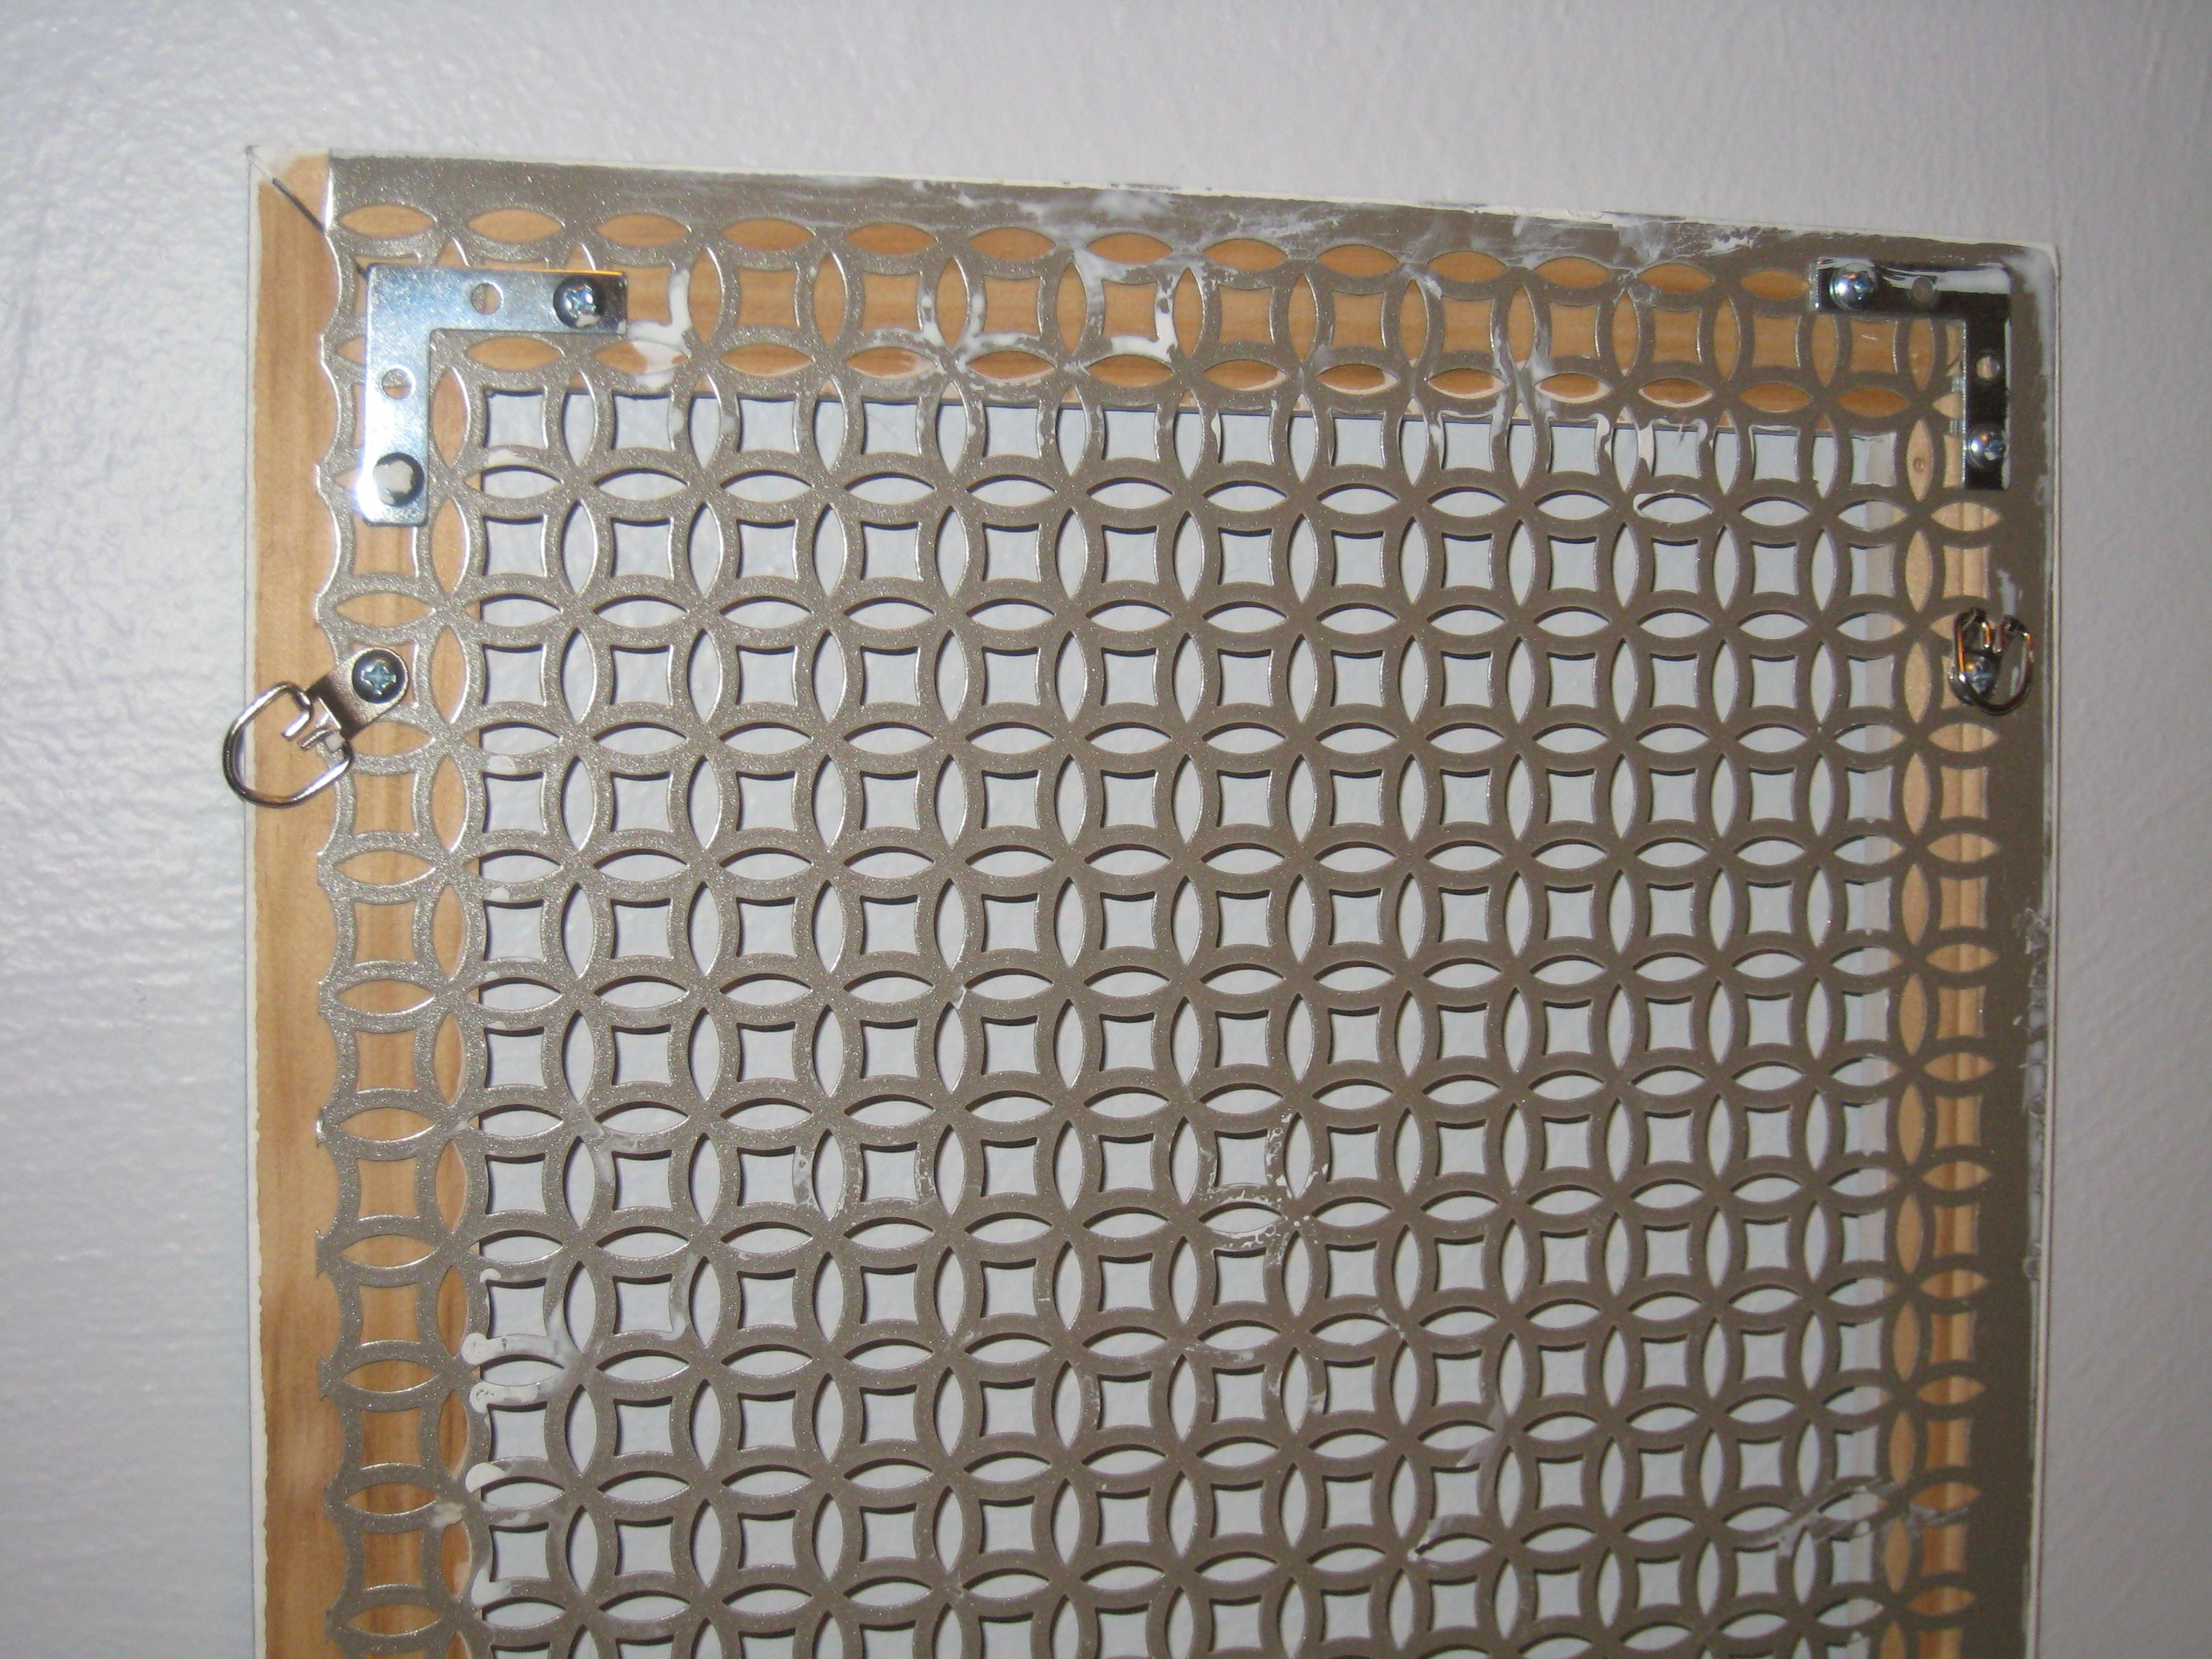 Air Vent Replacement Covers Vent covers, Air return vent